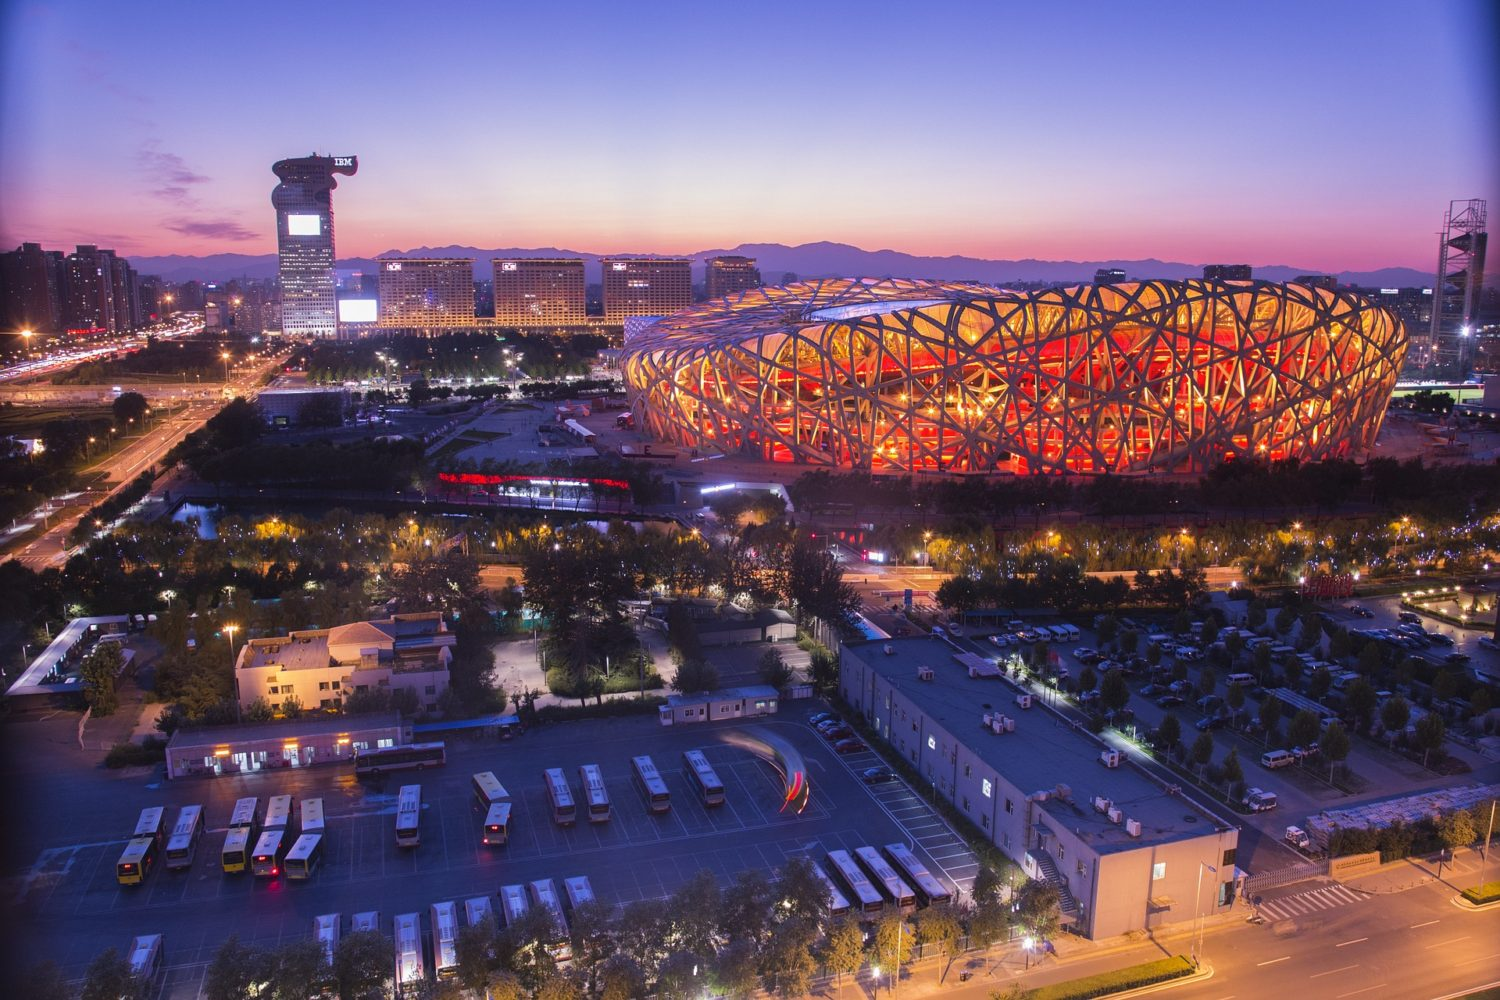 The Bird's Nest Stadium in Beijing, China